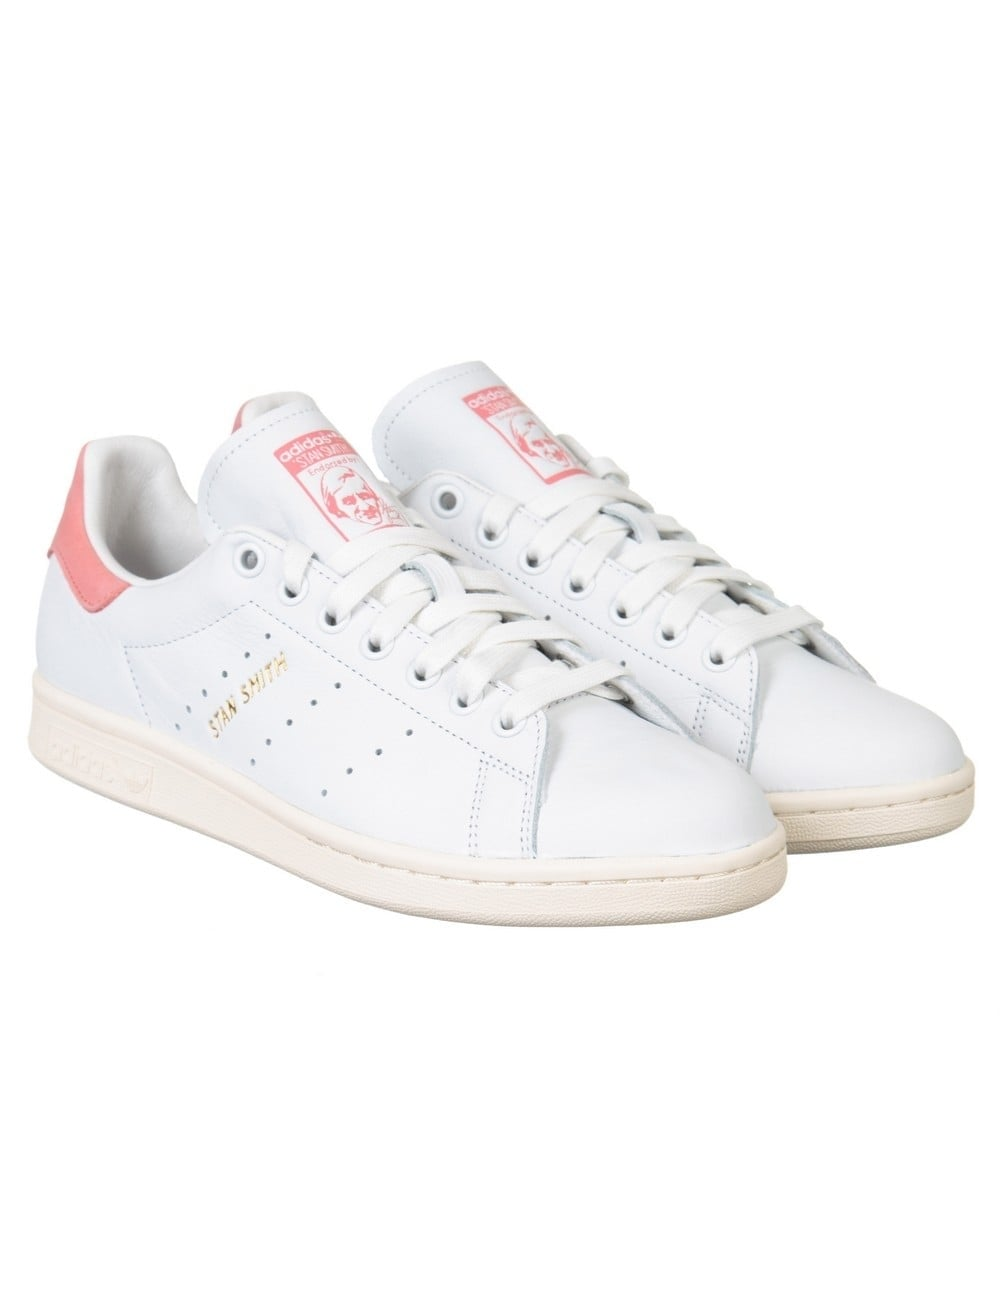 Stan Smith Shoes - White/Ray Pink